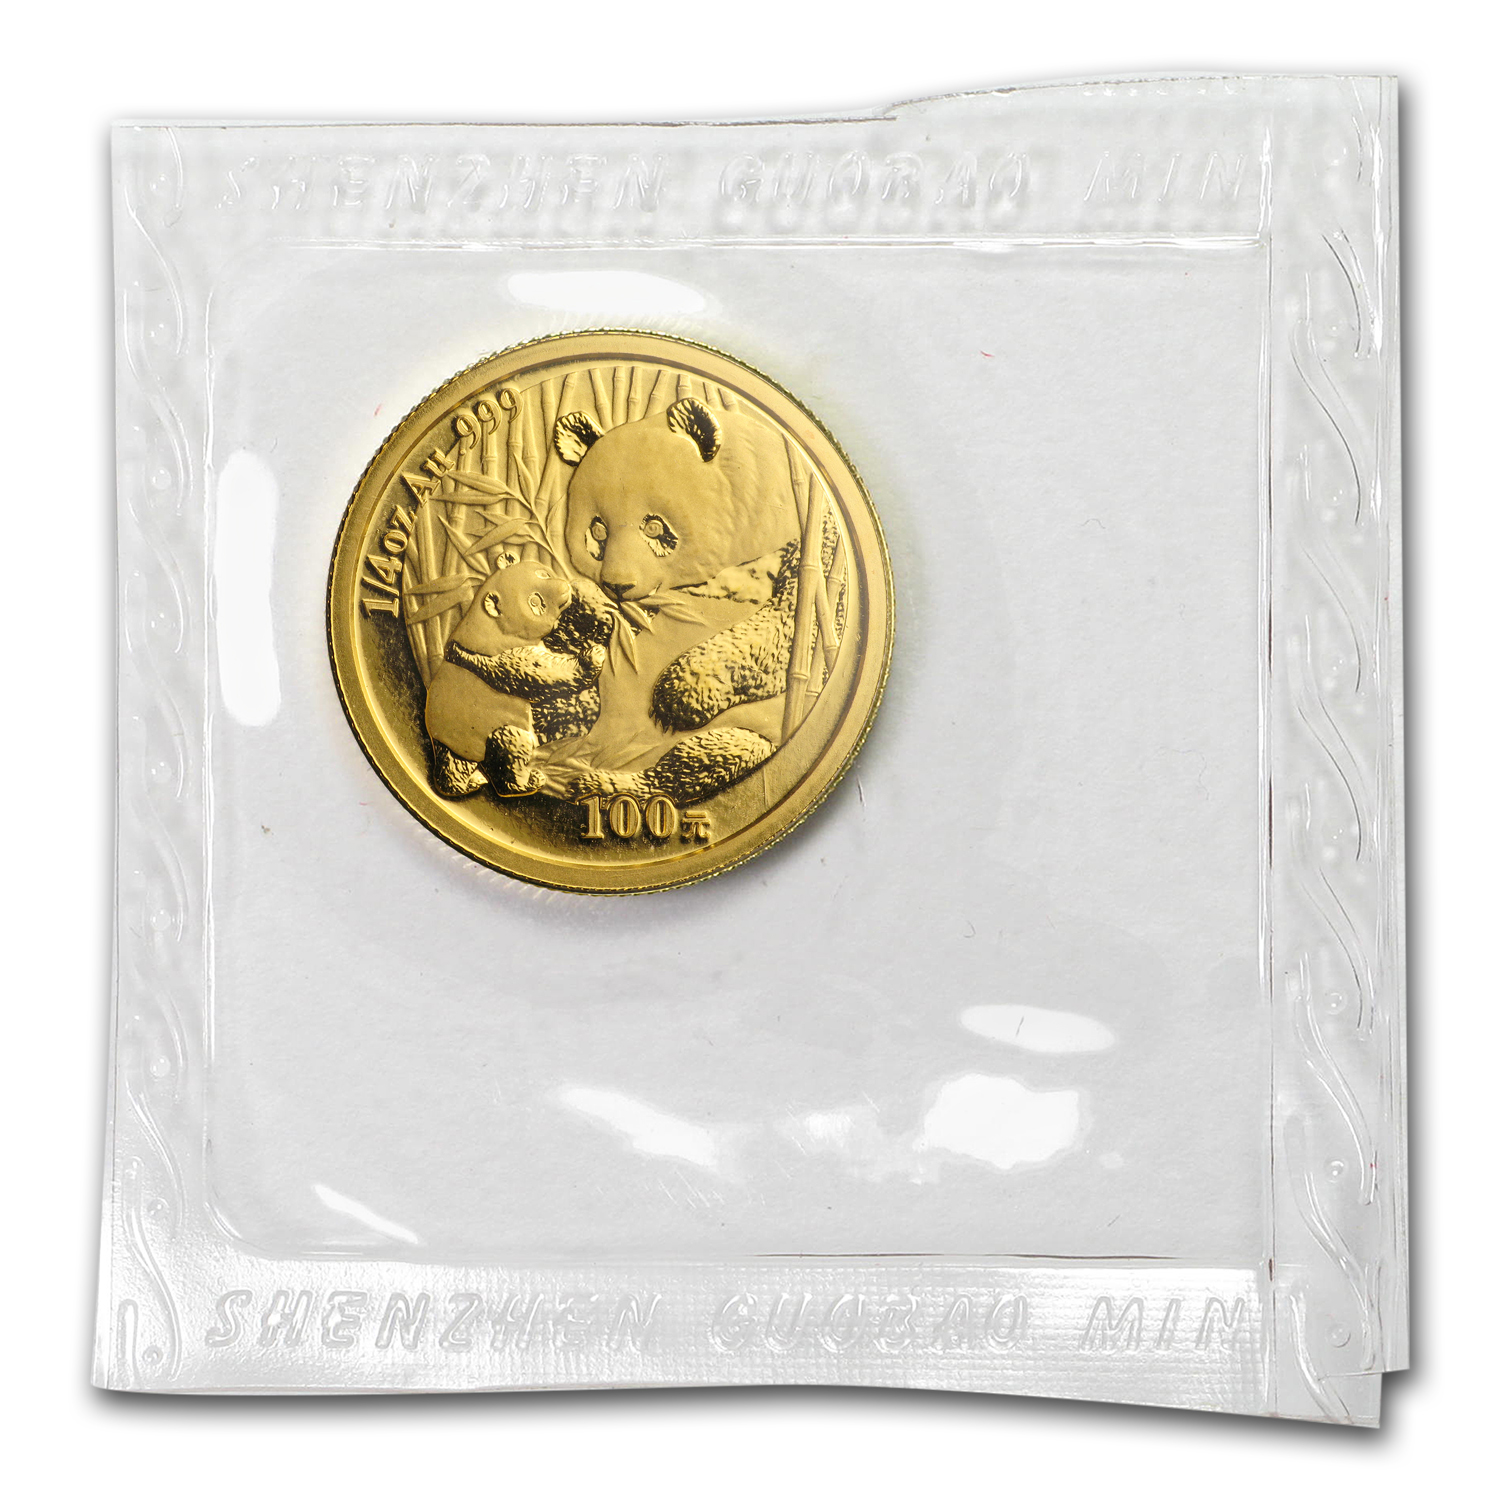 2005 China 1/4 oz Gold Panda BU (Sealed)